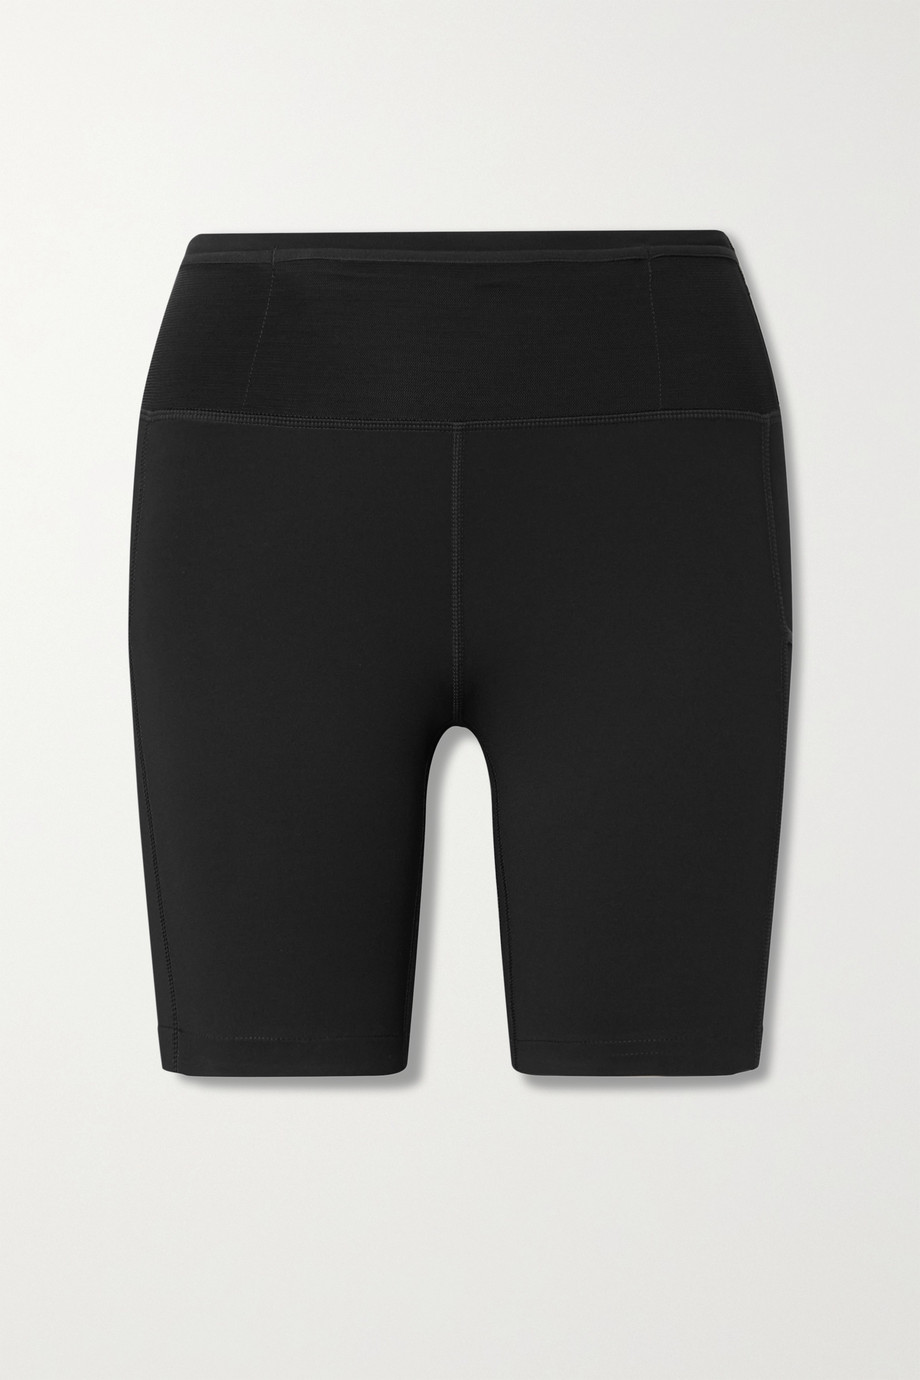 Nike Epic Luxe Dri-FIT shorts